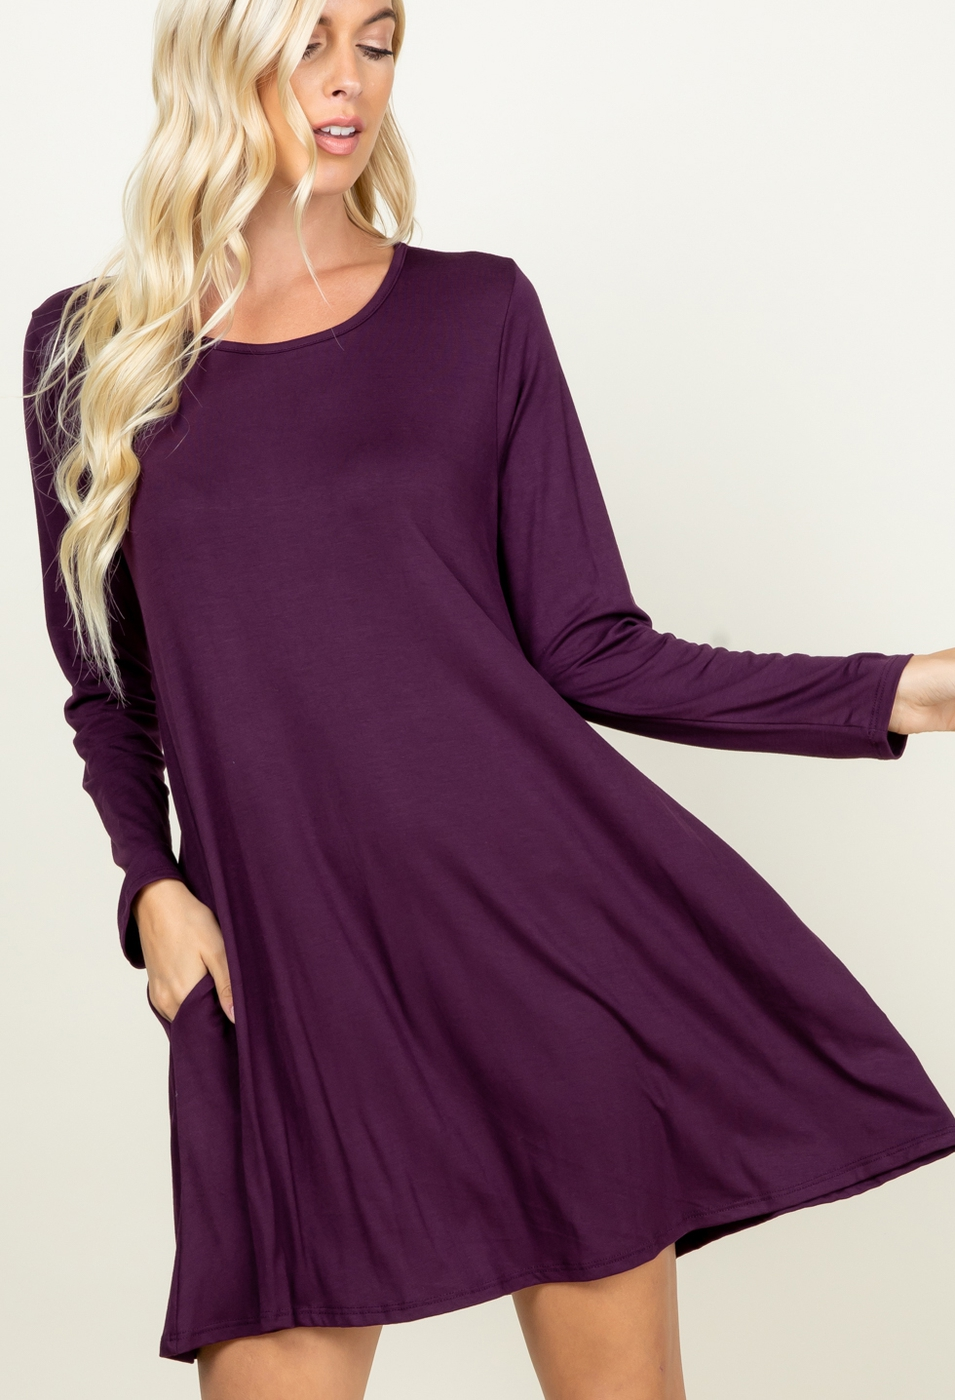 SOLID DRESS WITH SIDE POCKET - orangeshine.com